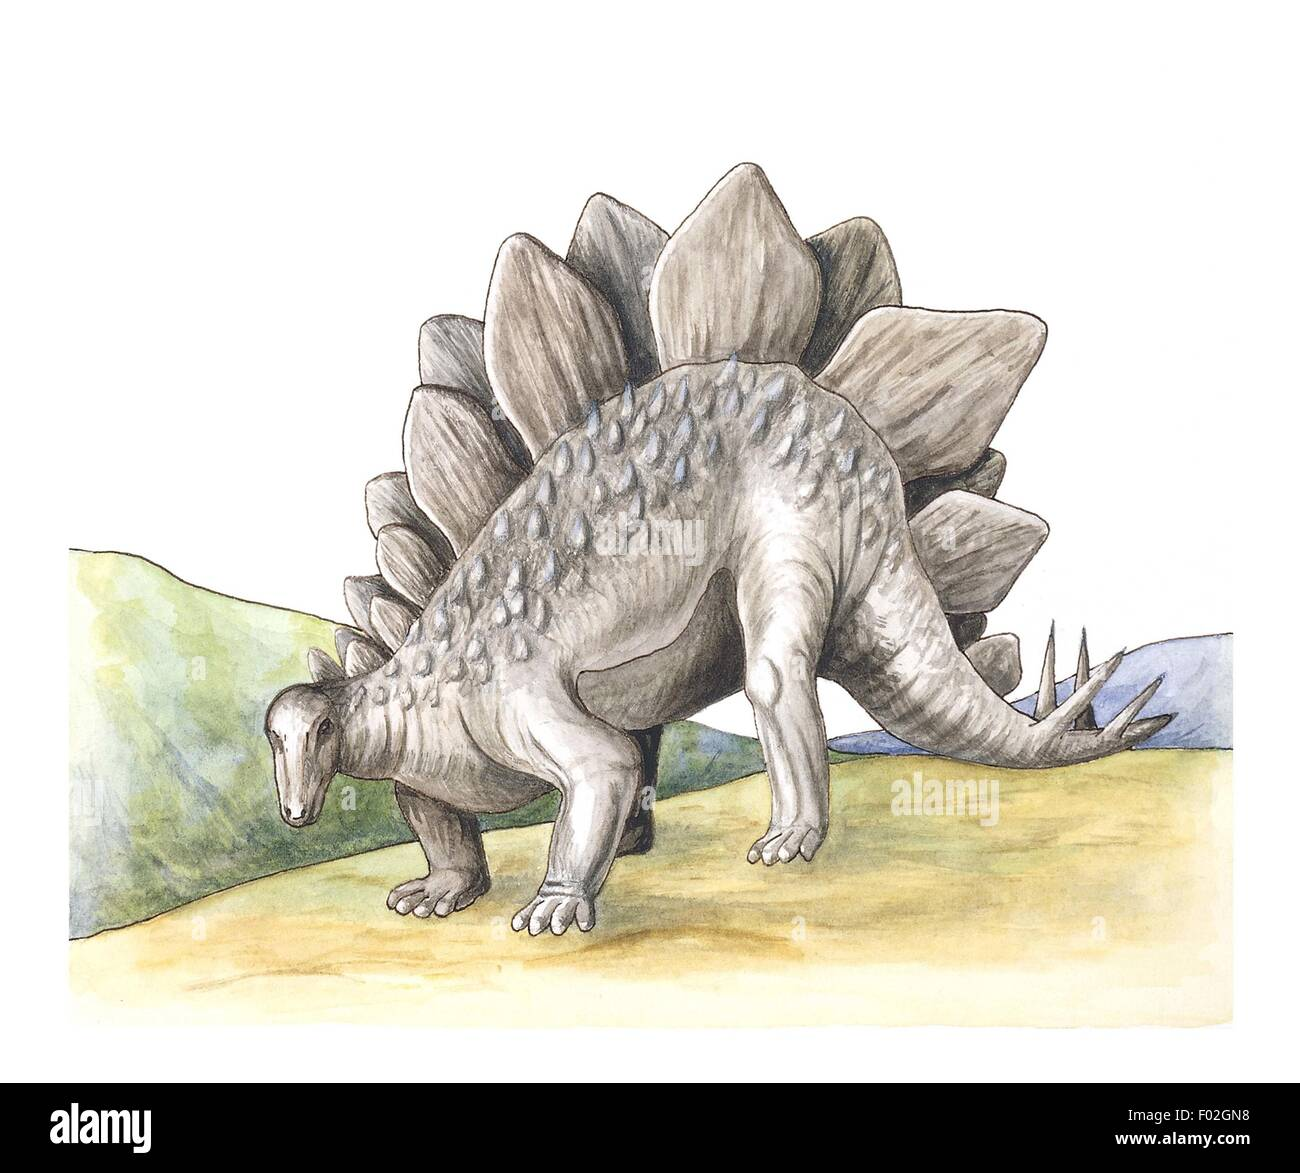 Stegosaurus, illustration - Stock Image